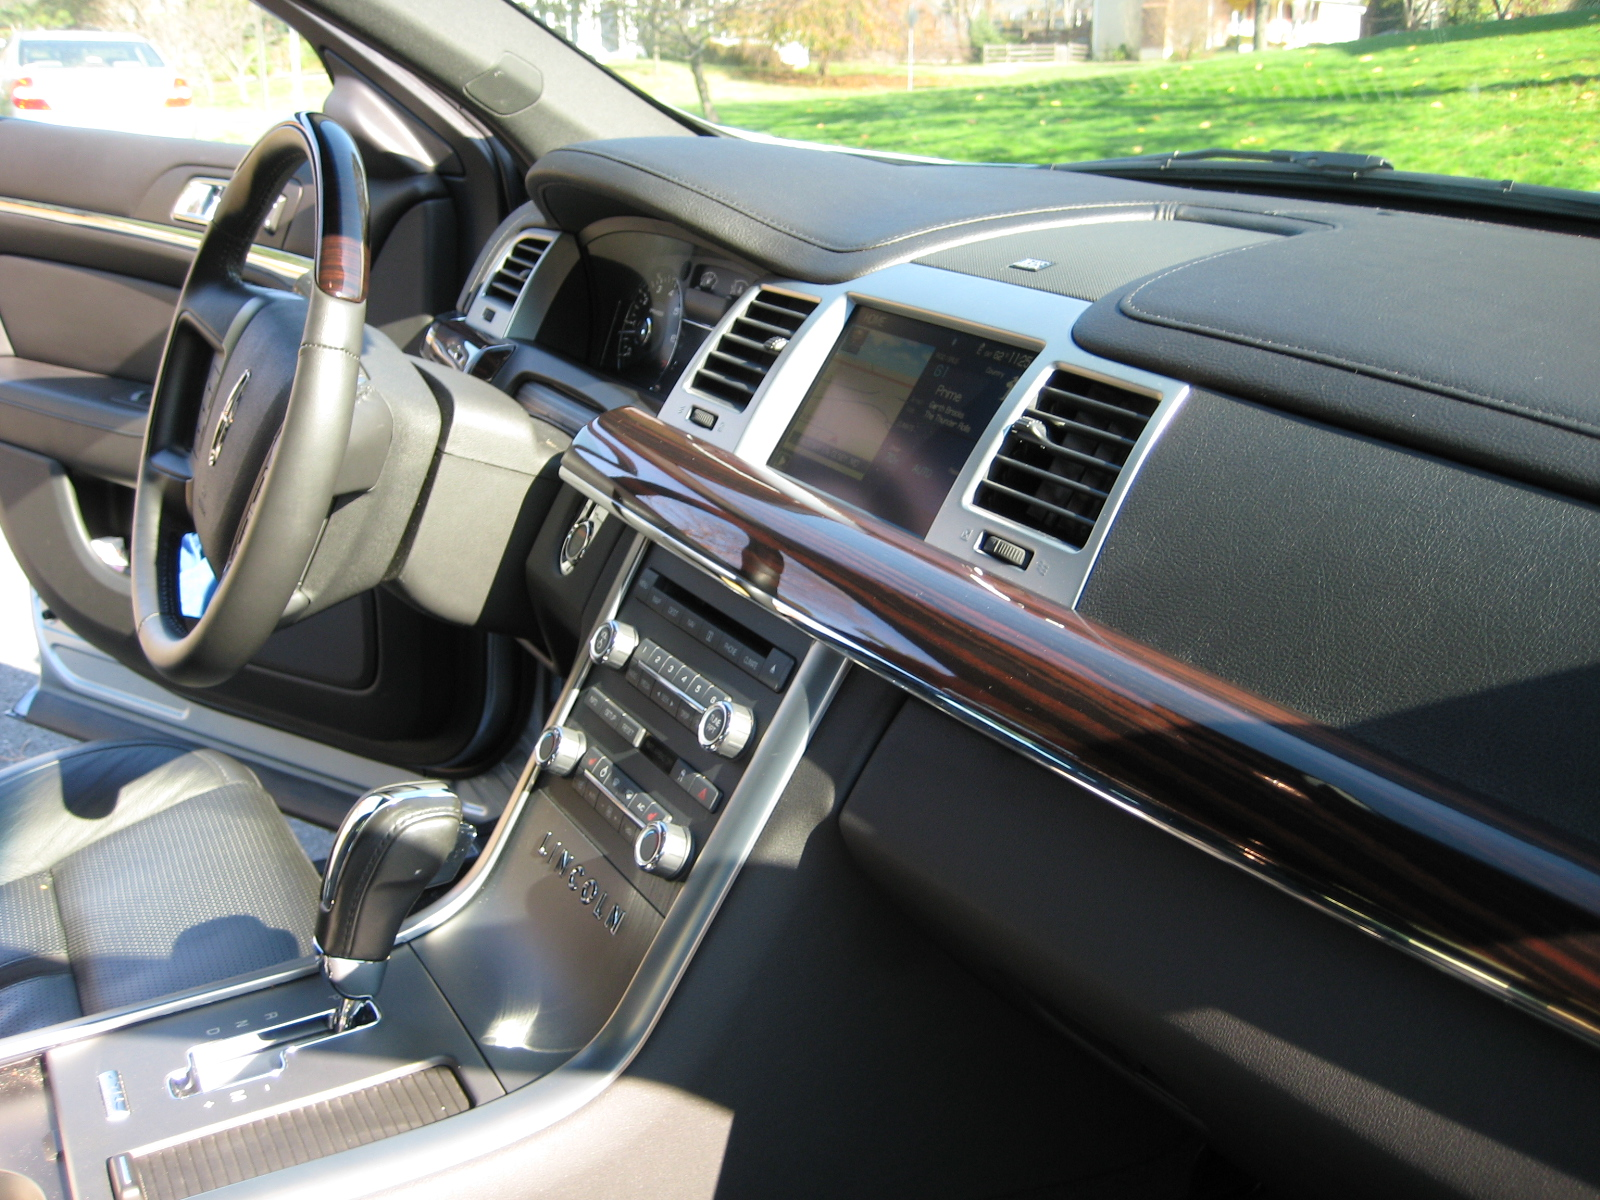 2009 lincoln mks dashboard